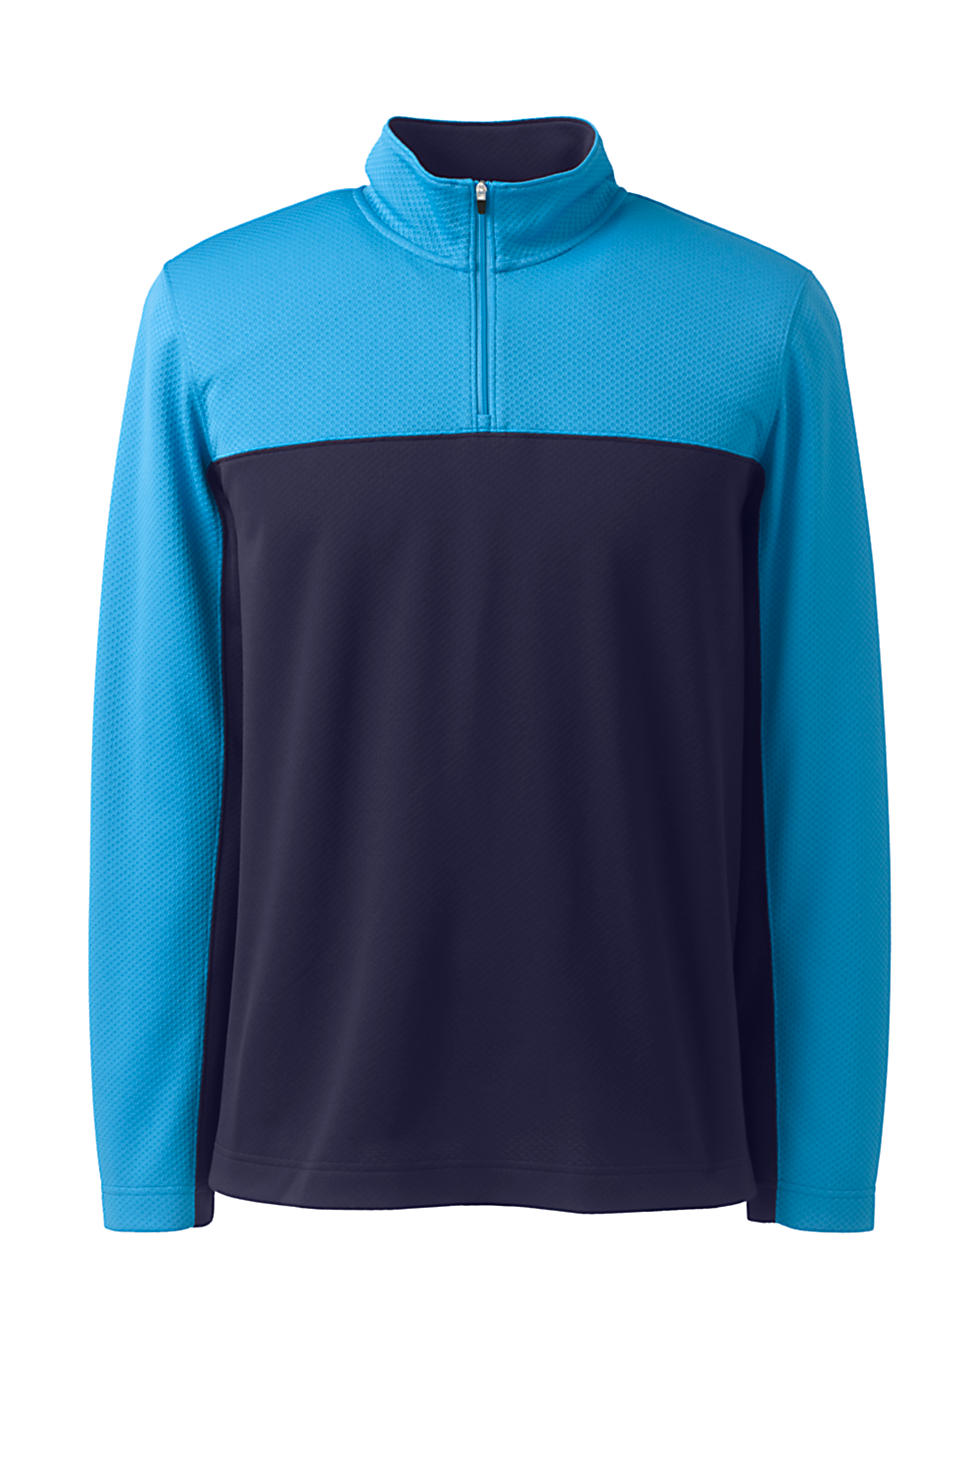 Lands End Mens Textured Colorblock Quarter Zip Pullover (True Navy)